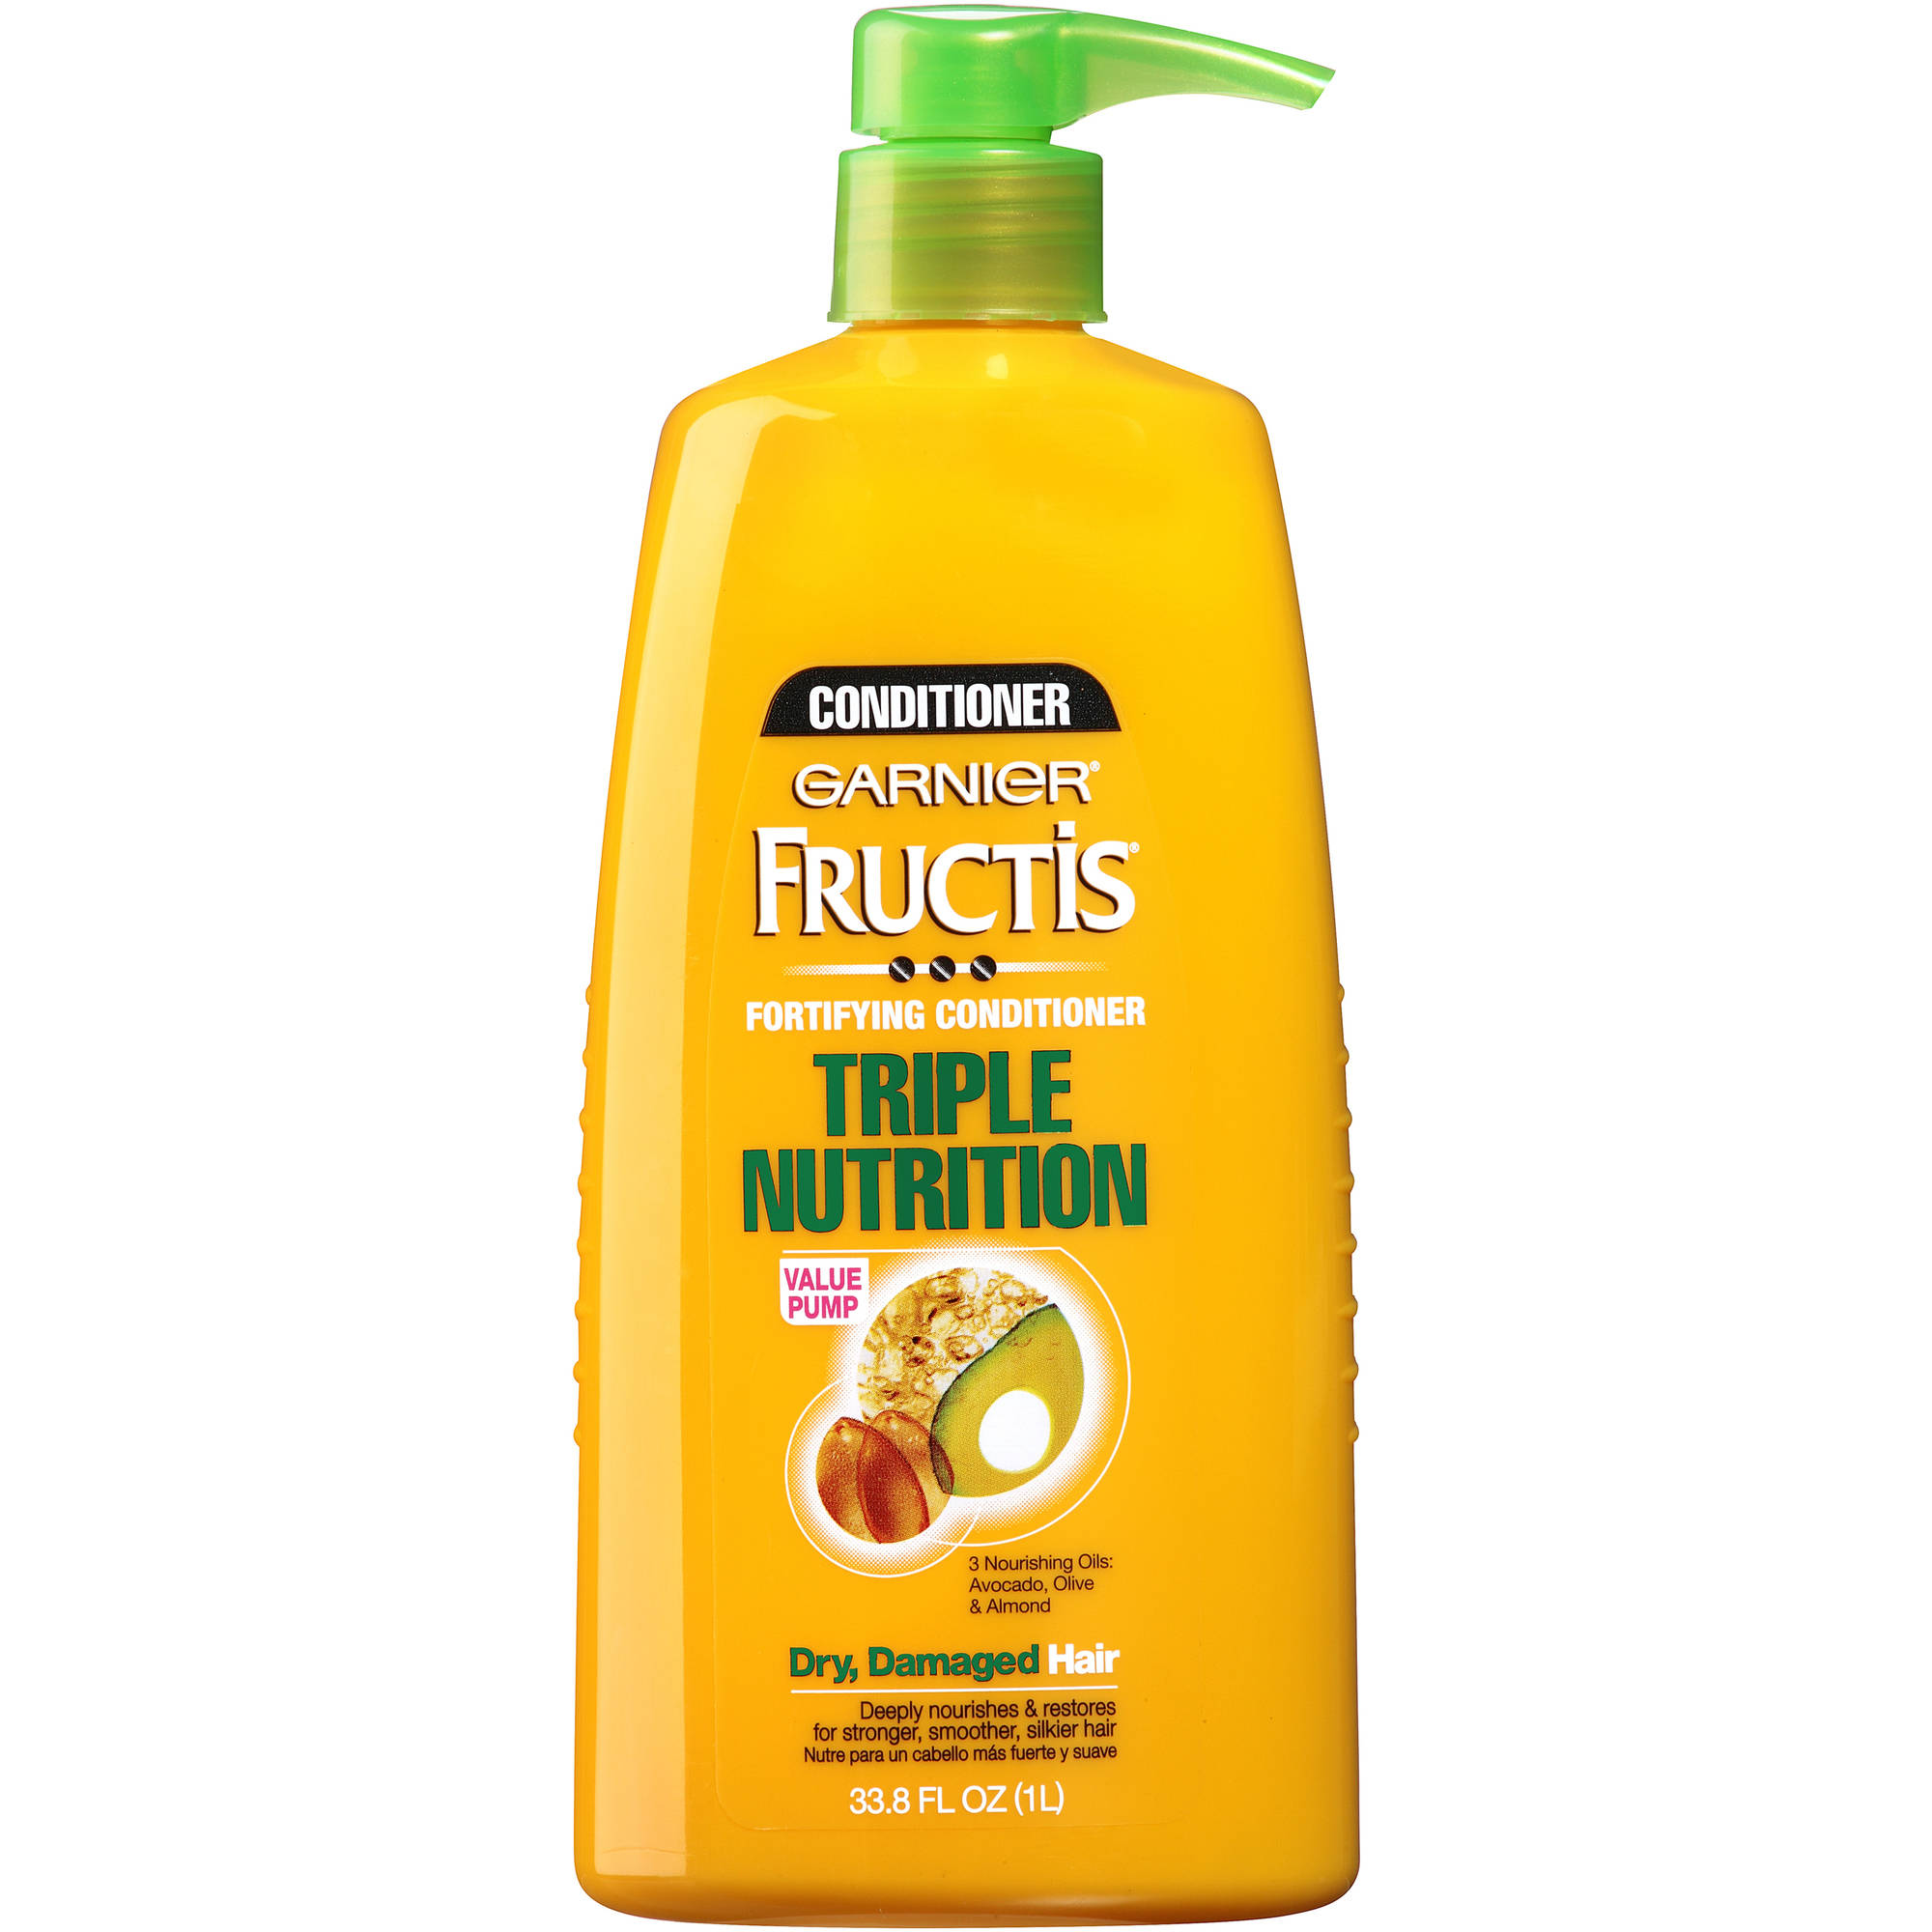 Garnier Fructis Triple Nutrition Fortifying Conditioner, 33.8 fl oz